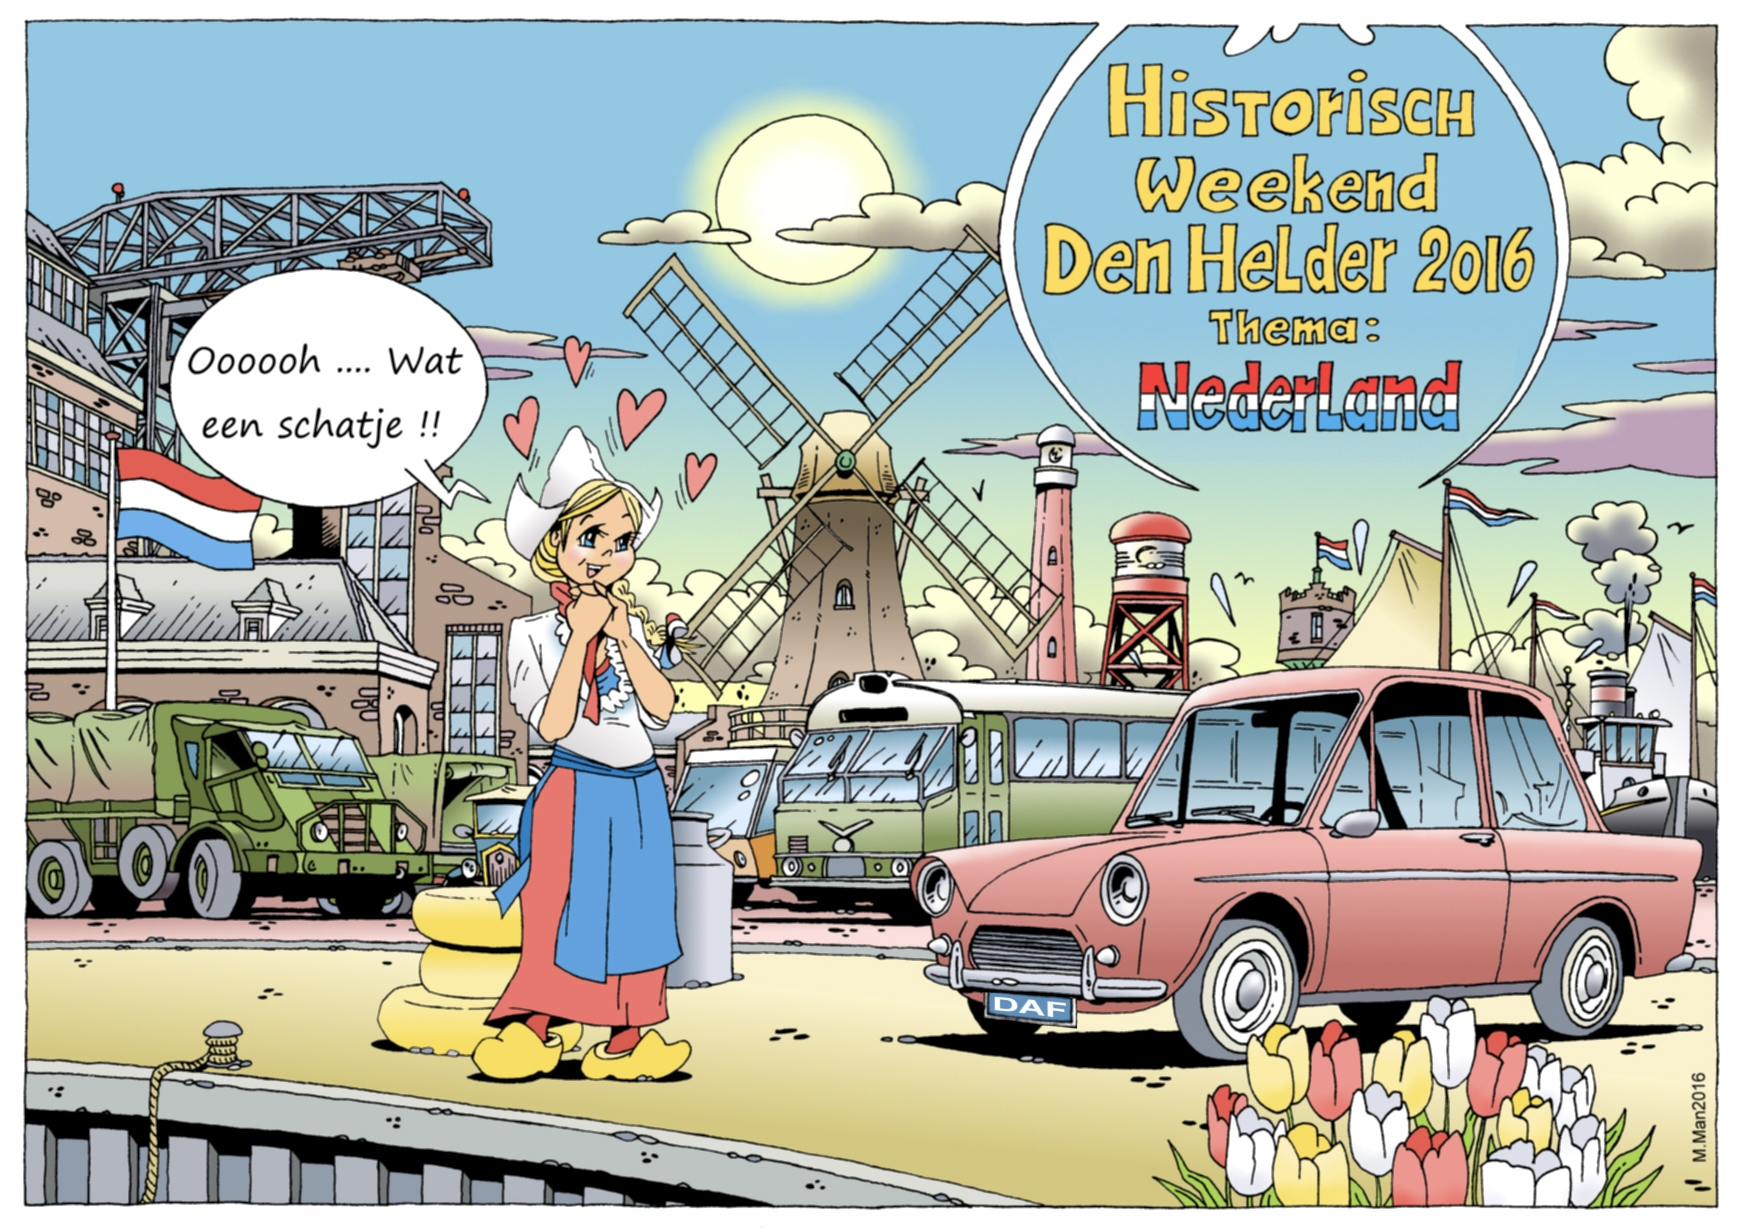 CARTOON DEFINITIEF 18 april 2016Hist.Weekend A4 CL1